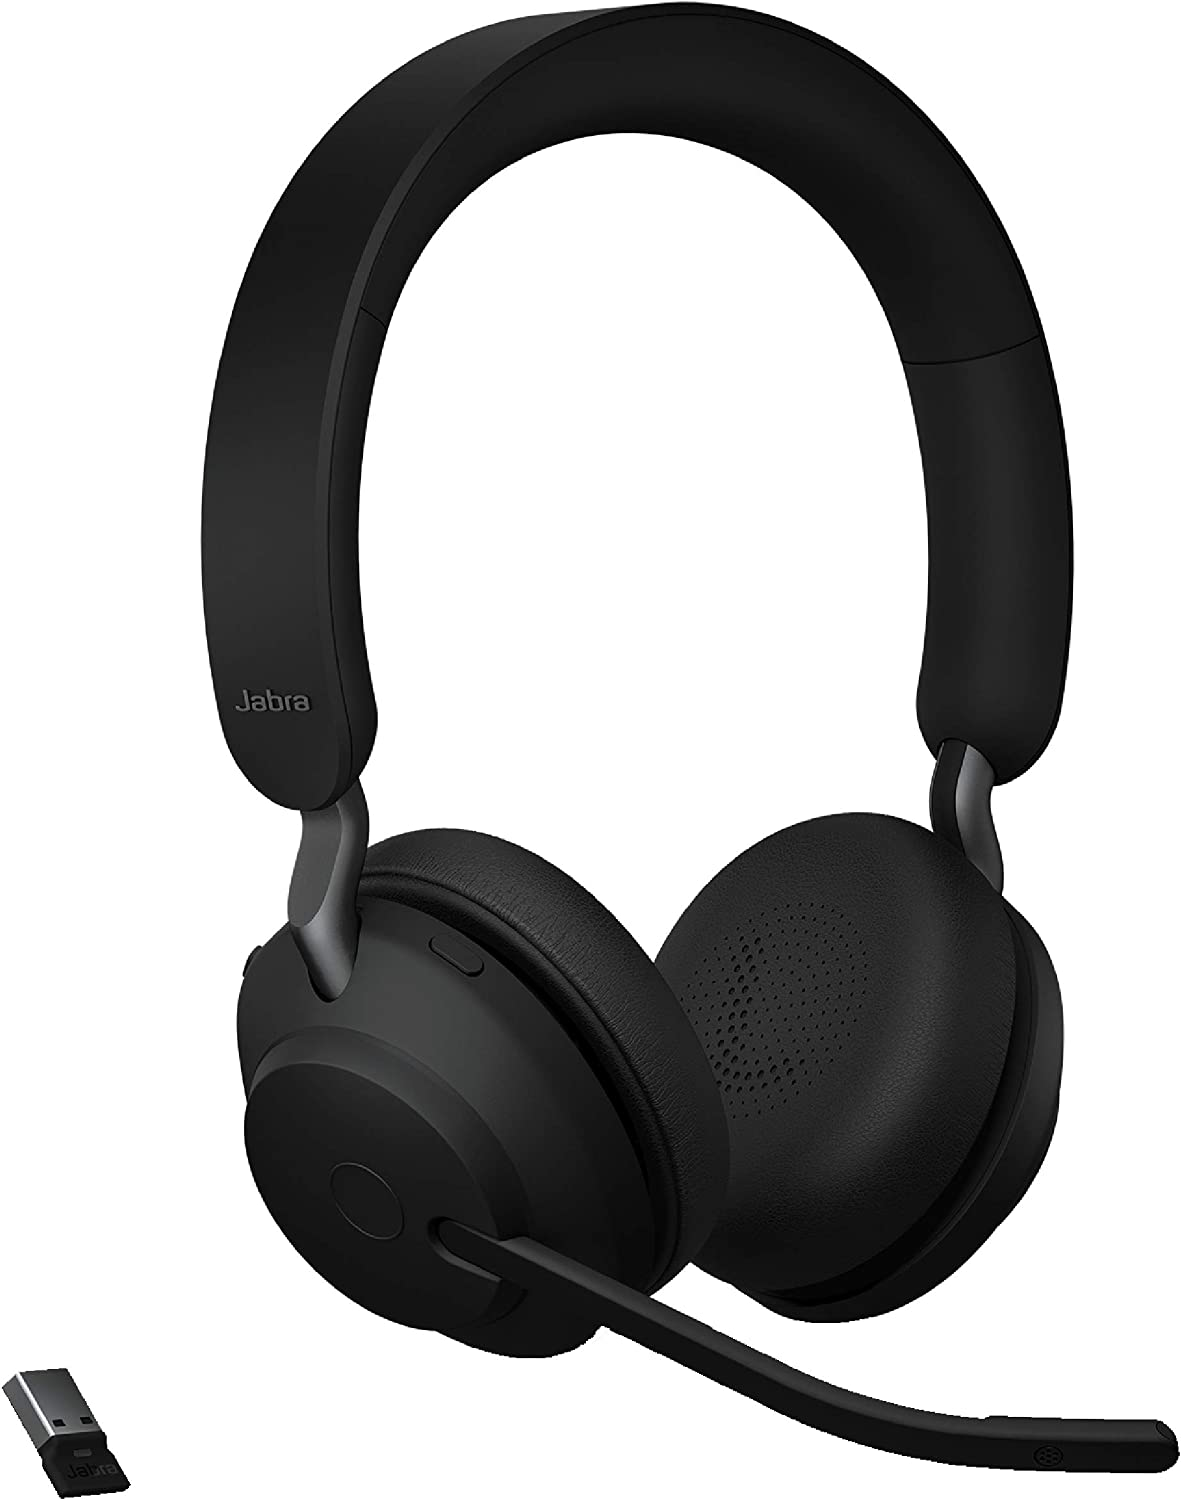 Amazon Com Jabra Evolve2 65 Uc Wireless Headphones With Link380a Stereo Black Wireless Bluetooth Headset For Calls And Music 37 Hours Of Battery Life Passive Noise Cancelling Headphones